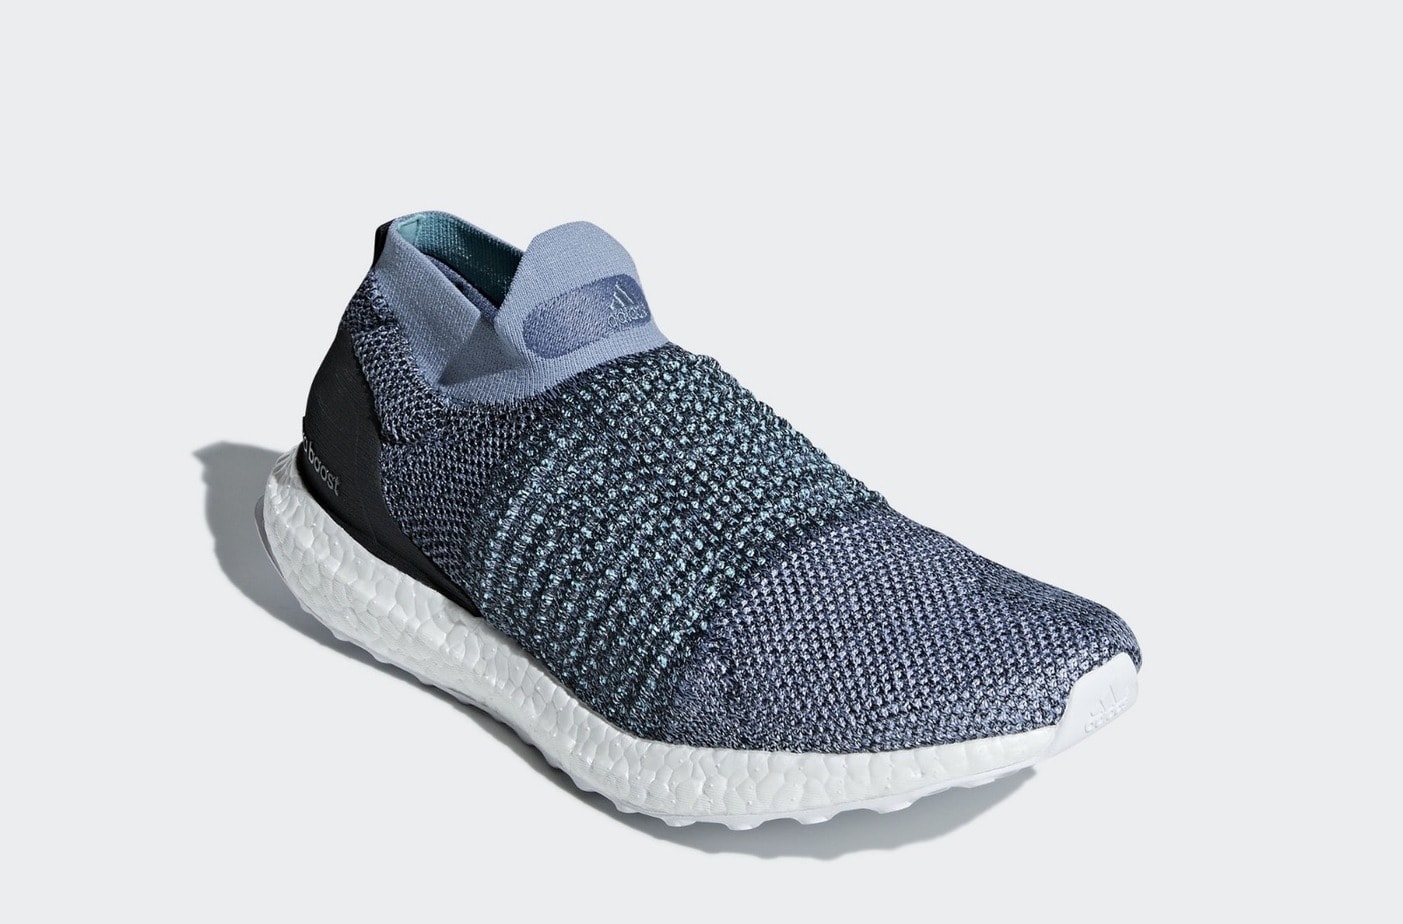 06d3b3de991e1 The adidas Ultra Boost Laceless Completes the Parley Collection this Summer